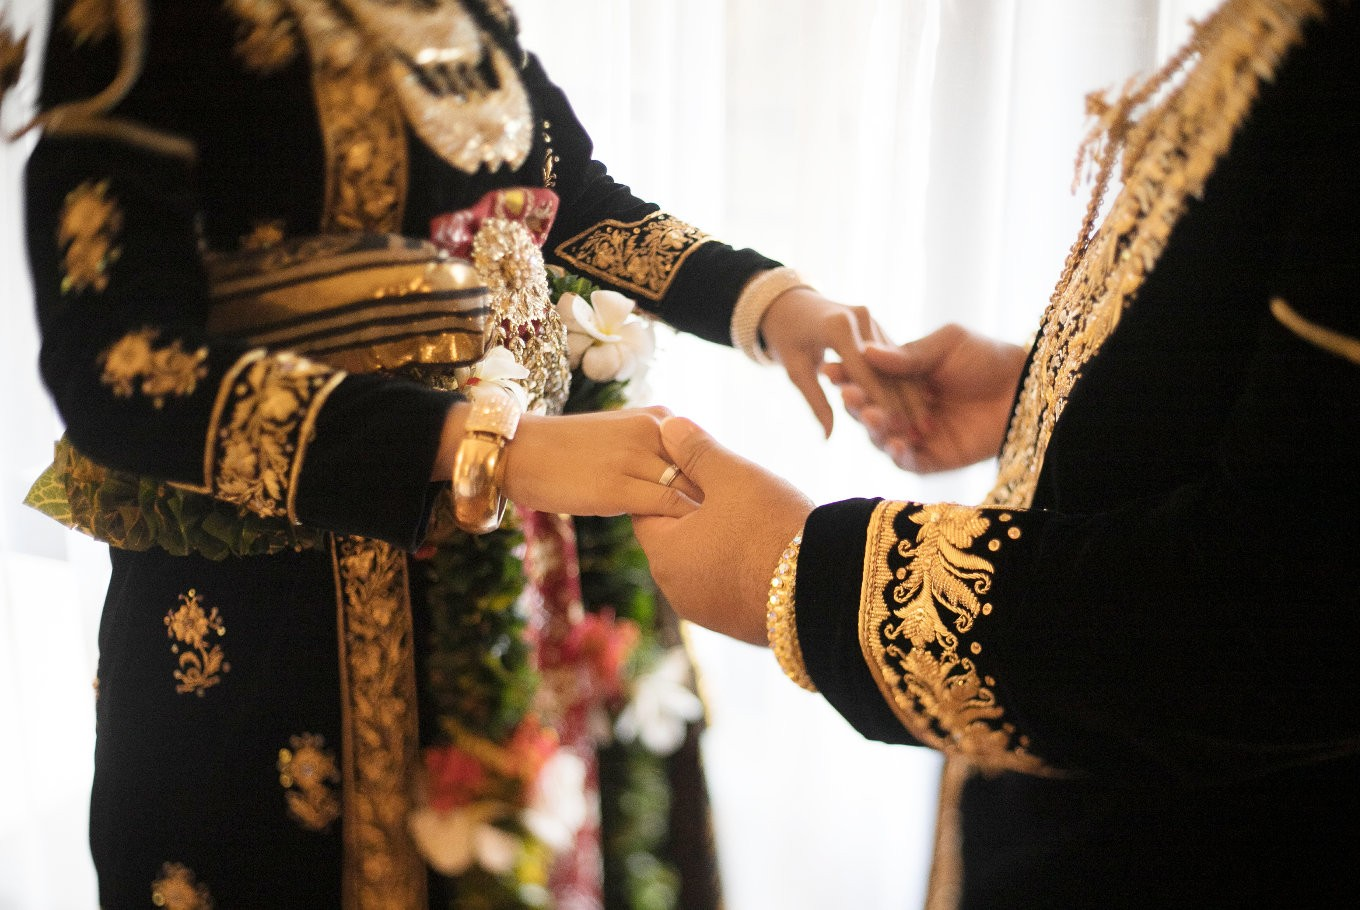 From raincoats to video calls, COVID-19 adds unusual wrinkle to typical Indonesian weddings